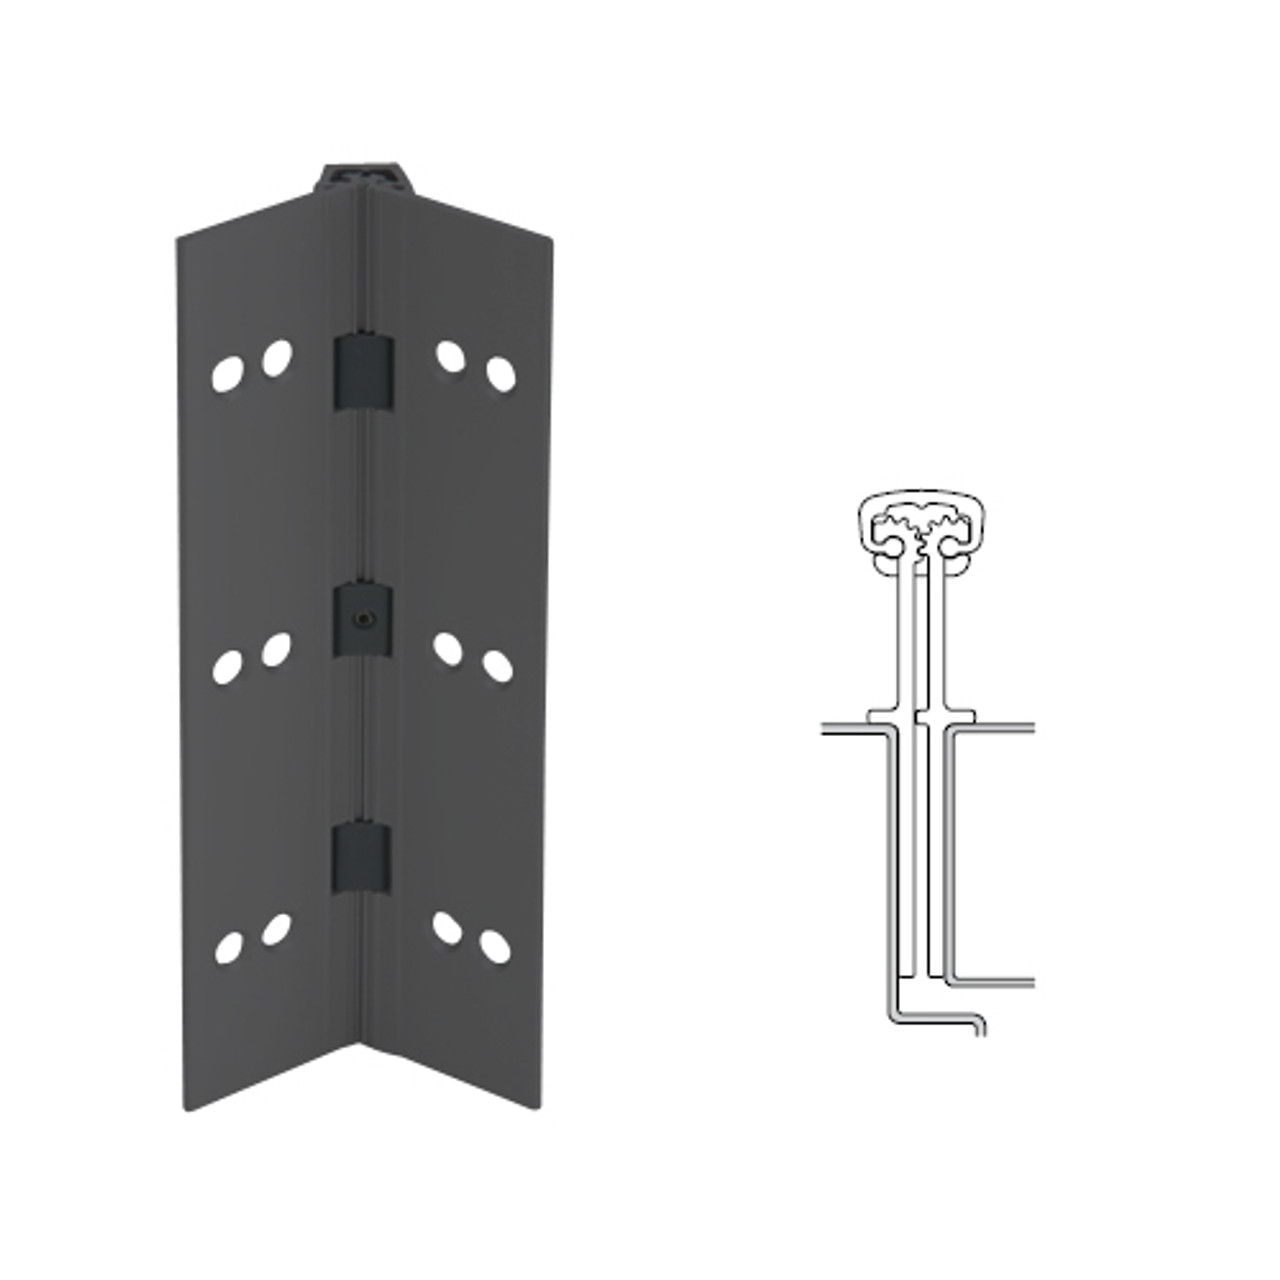 040XY-315AN-120-SECWDWD IVES Full Mortise Continuous Geared Hinges with Security Screws - Hex Pin Drive in Anodized Black